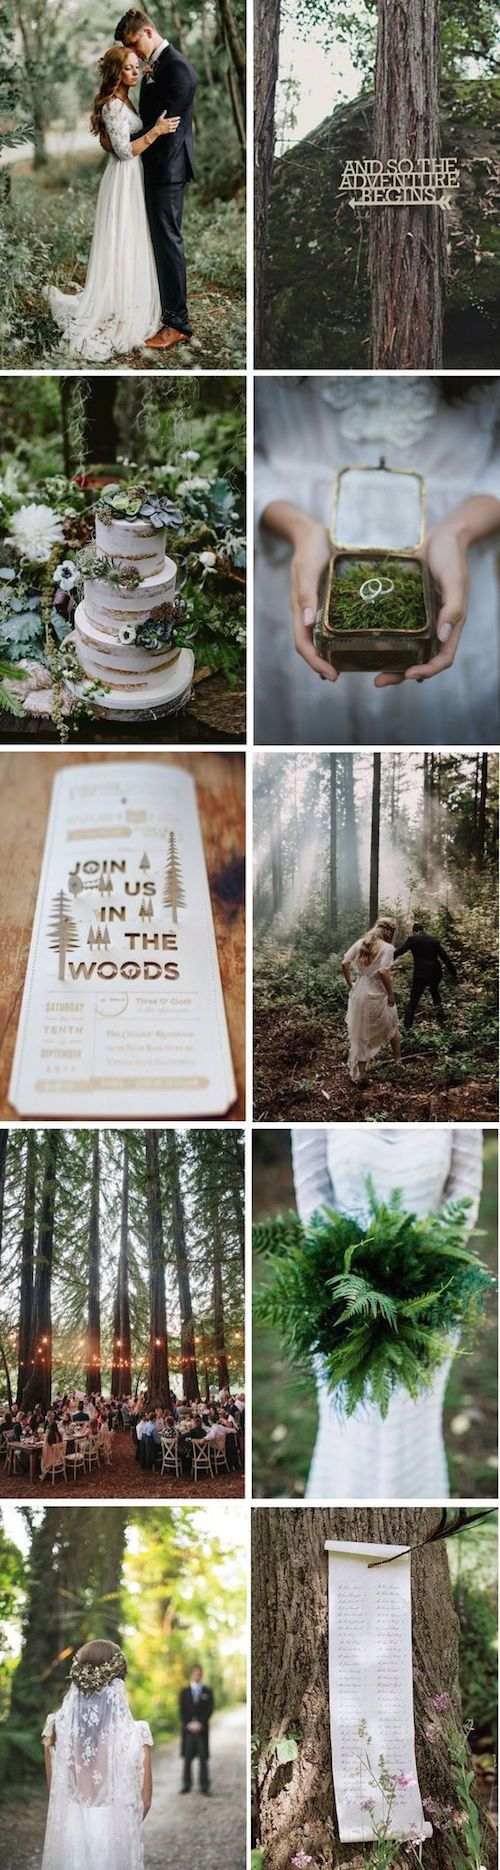 enchanted-forest-wedding-ideas.jpg 500×1 870 pikseli